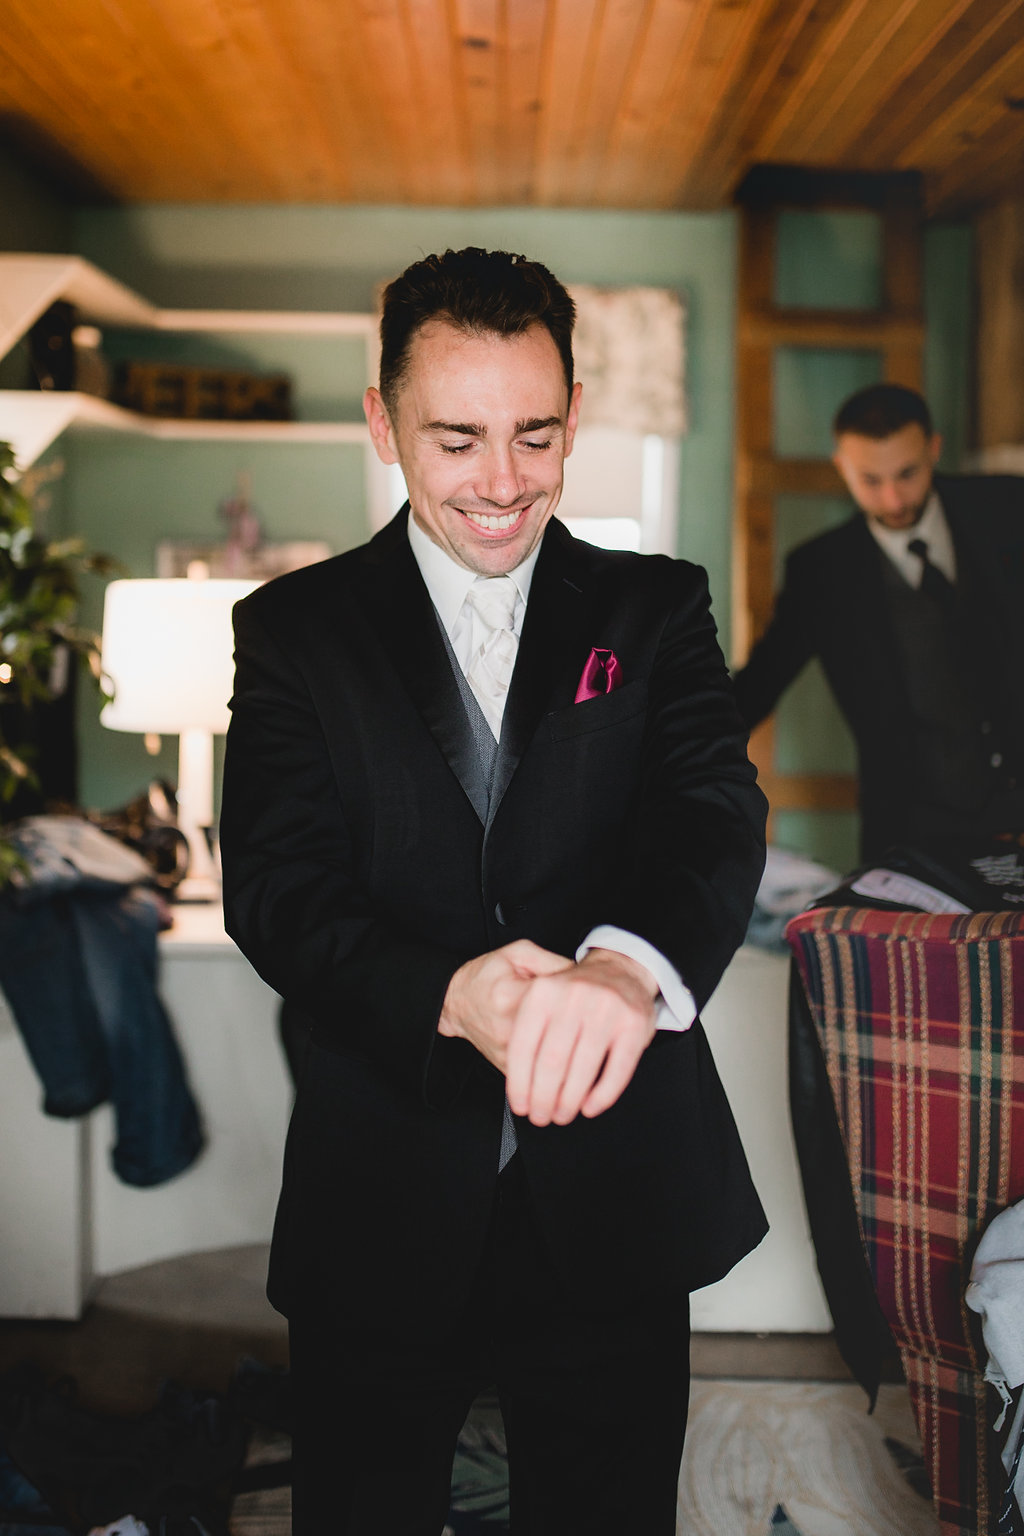 Leslee & Billy | Legacy Hill Farm Wedding | Aqua Fox Photography | A Vintage Touch Wedding Planning | Sixpence Events & Planning day of coordinating | groom getting ready with a magenta pocket square